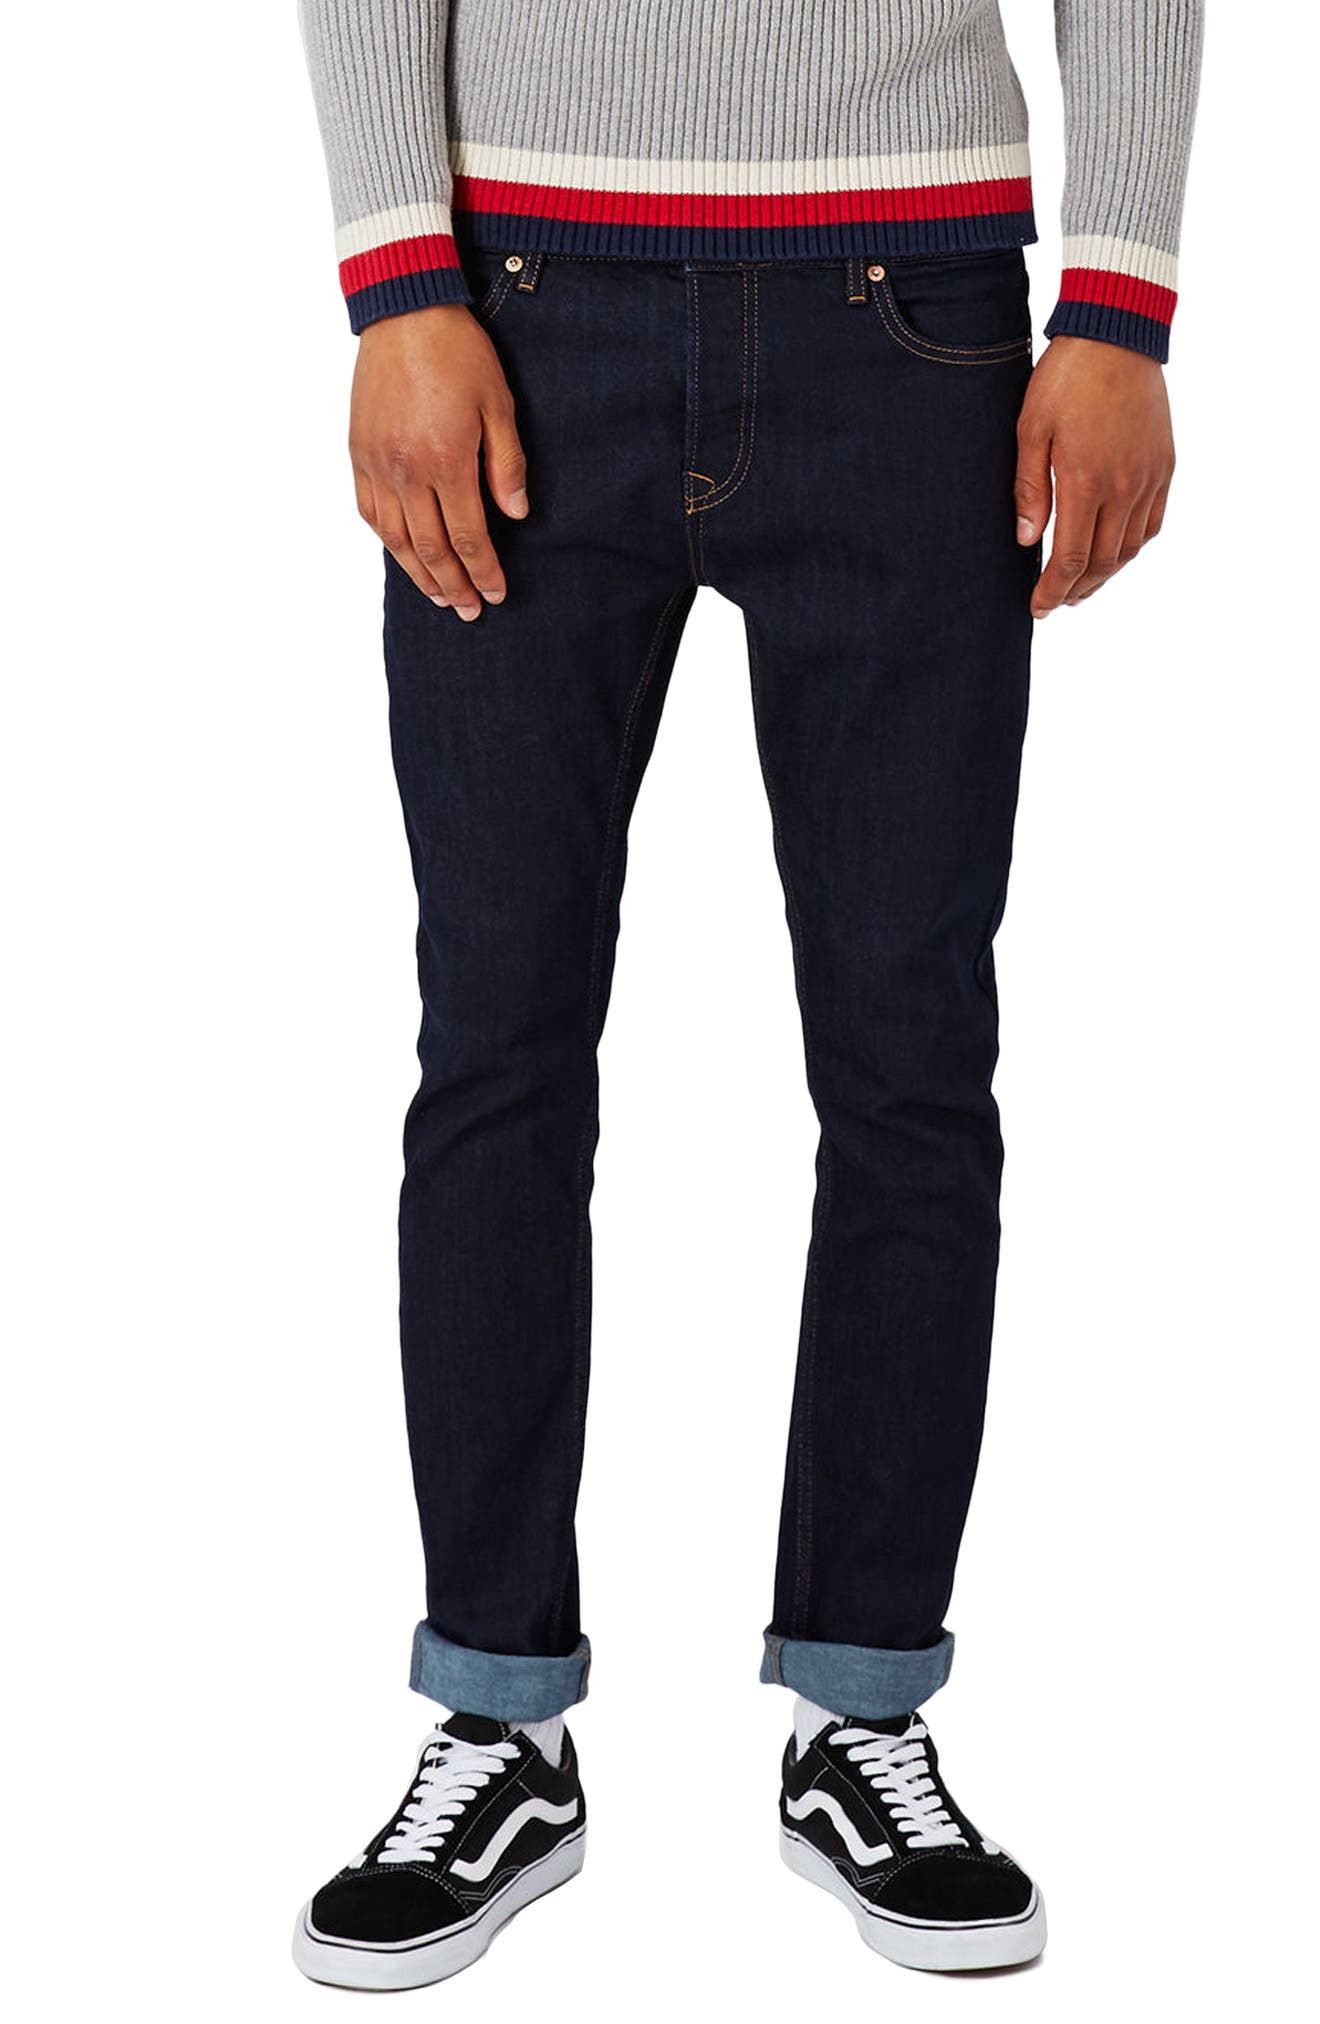 Topman Stretch Skinny Fit Raw Denim Jeans